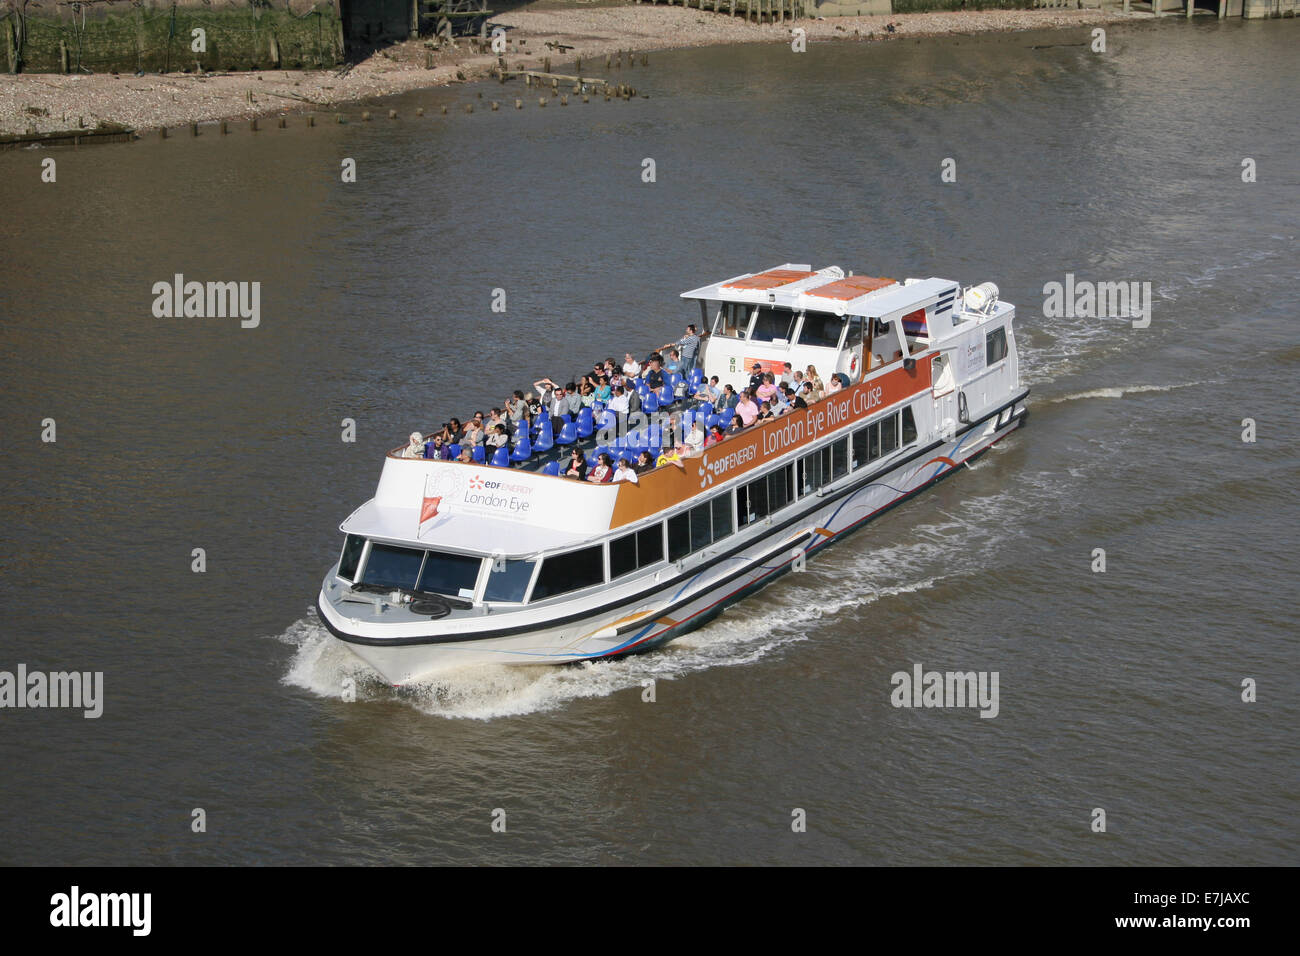 RIVER THAMES CRUISE TOUR BOAT LONDON - Stock Image